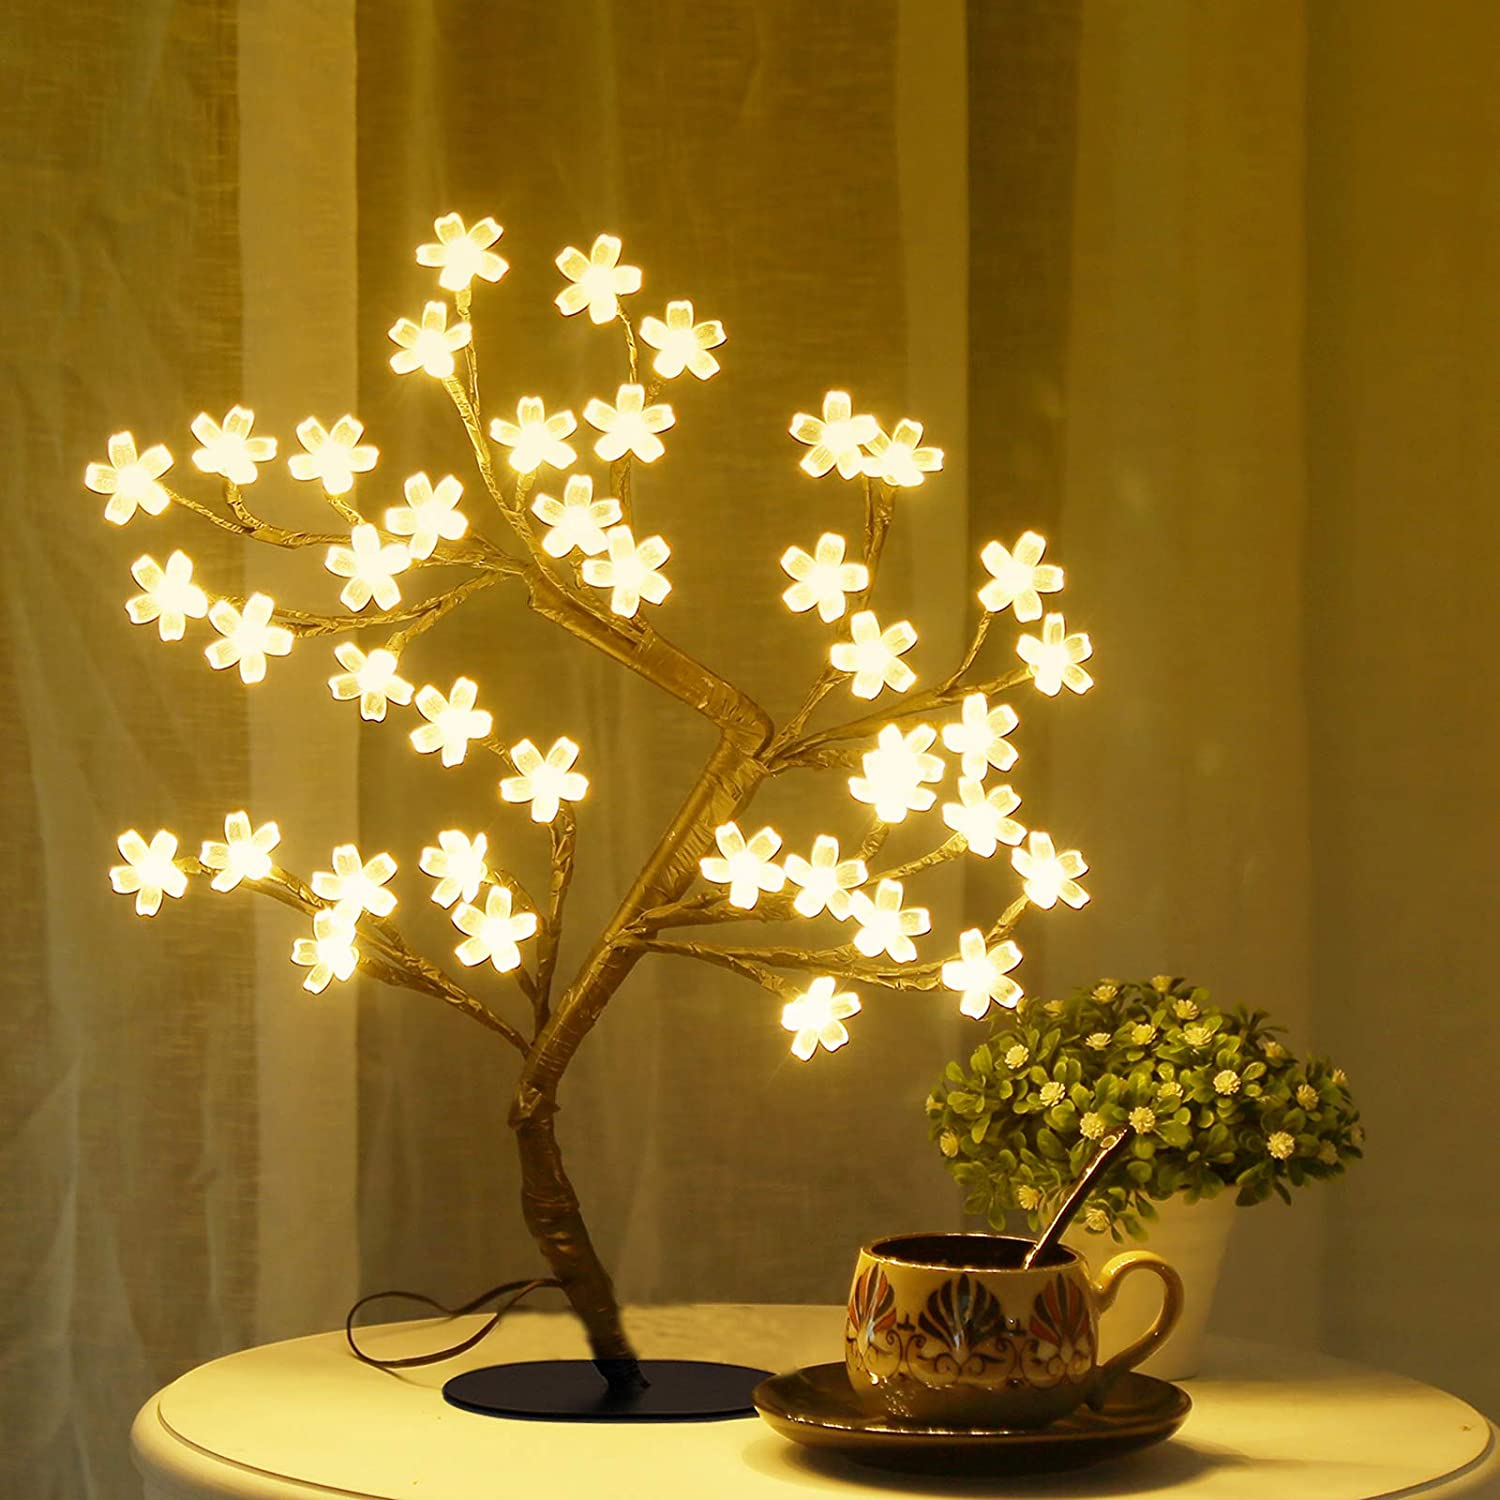 Lighted Table Decorations For Weddings  from images-na.ssl-images-amazon.com